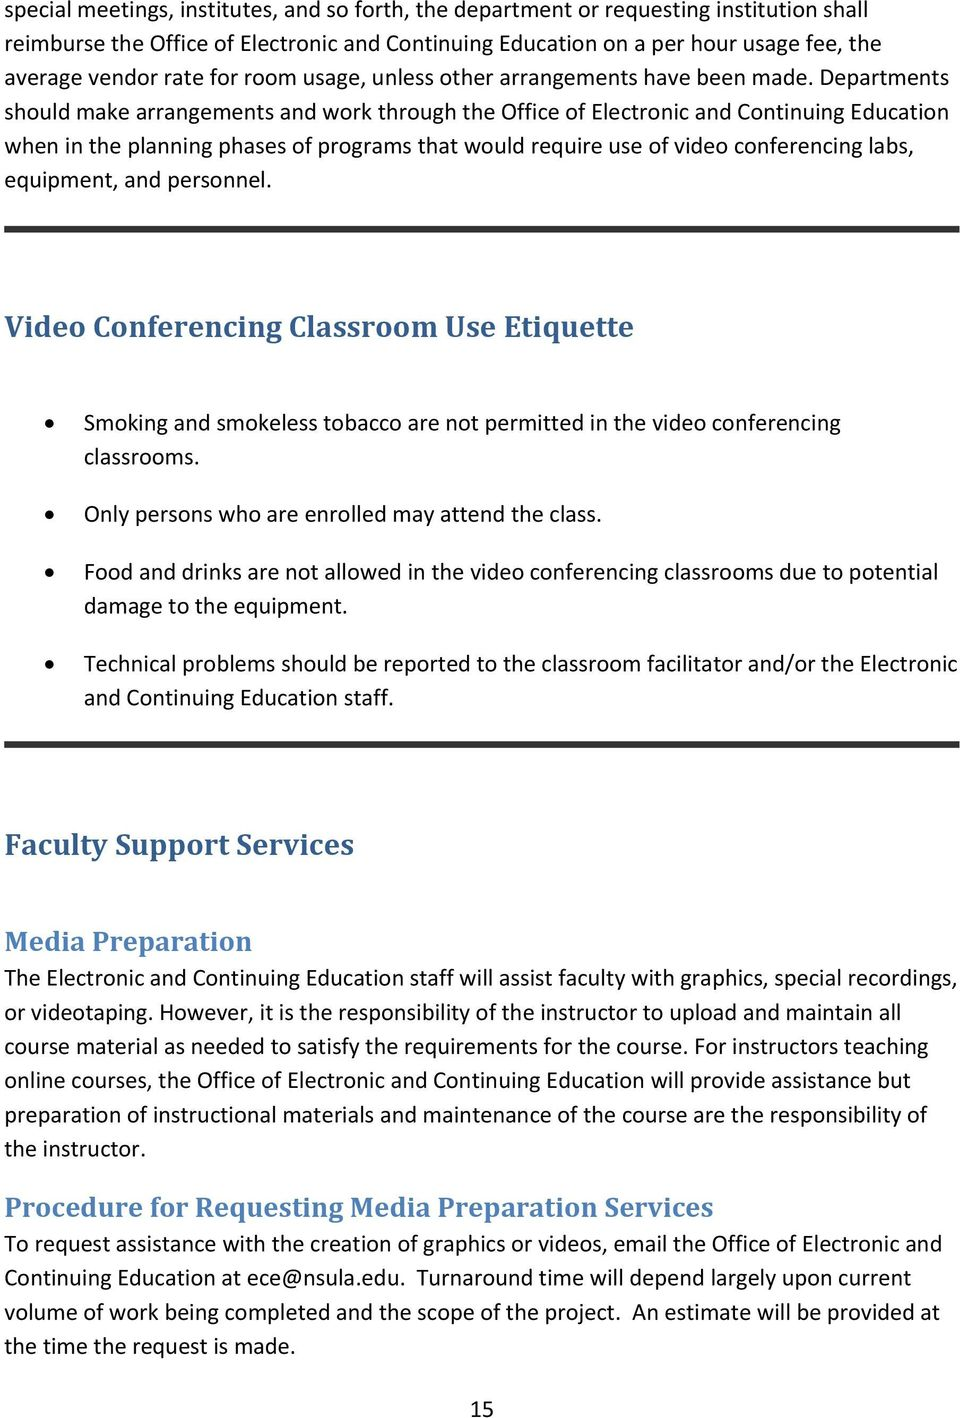 Departments should make arrangements and work through the Office of Electronic and Continuing Education when in the planning phases of programs that would require use of video conferencing labs,